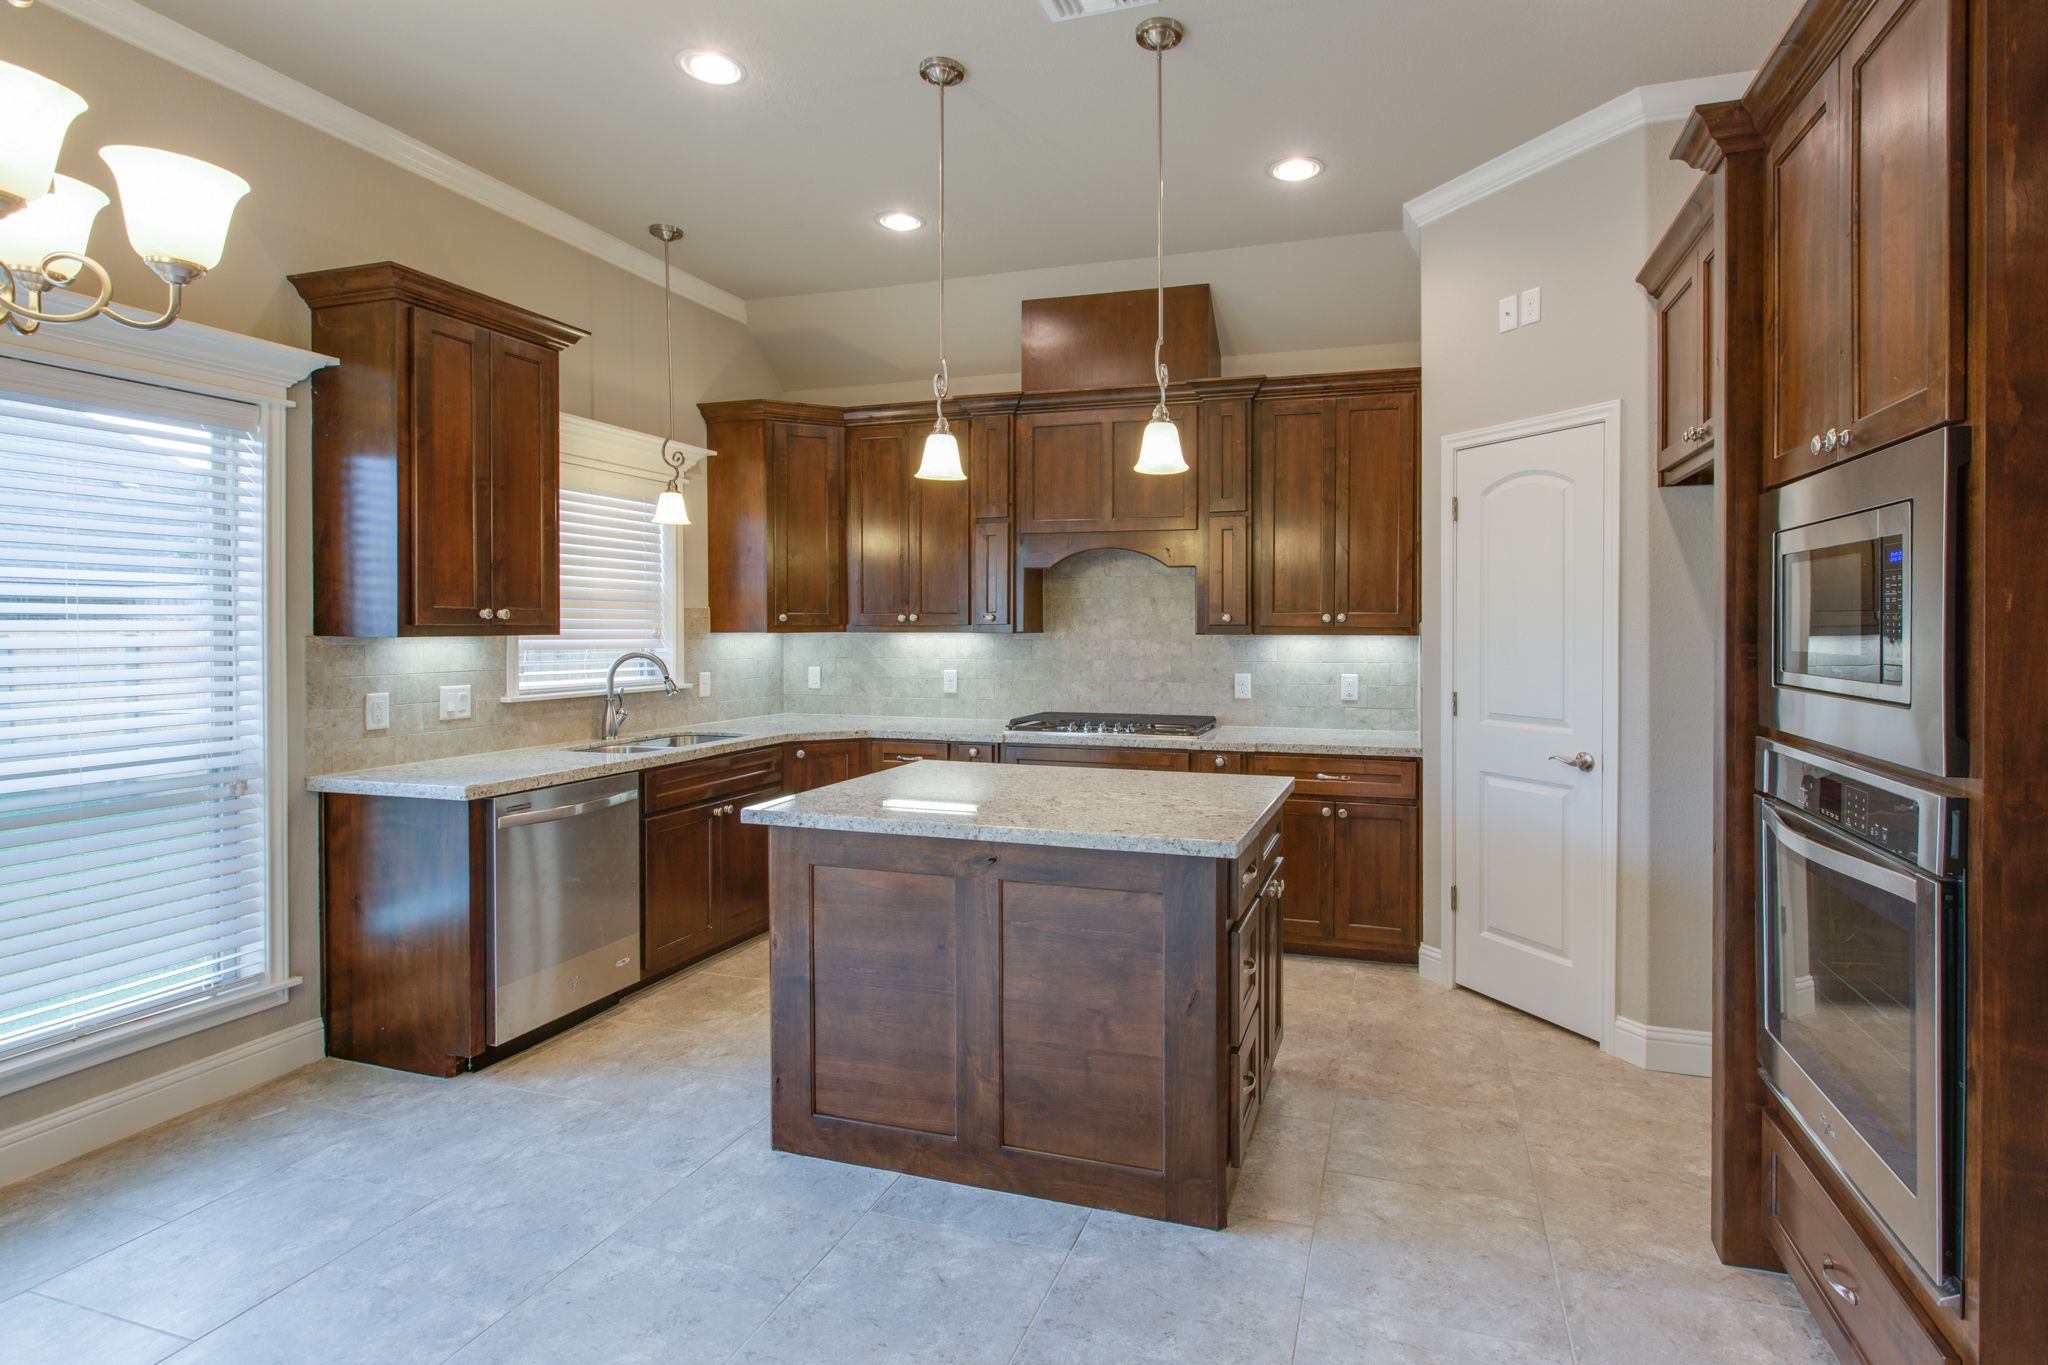 Stained Knotty Alder Cabinets With Brushed Nickel Fixtures And Hardware Knotty Alder Cabinets Alder Cabinets Dream Kitchen